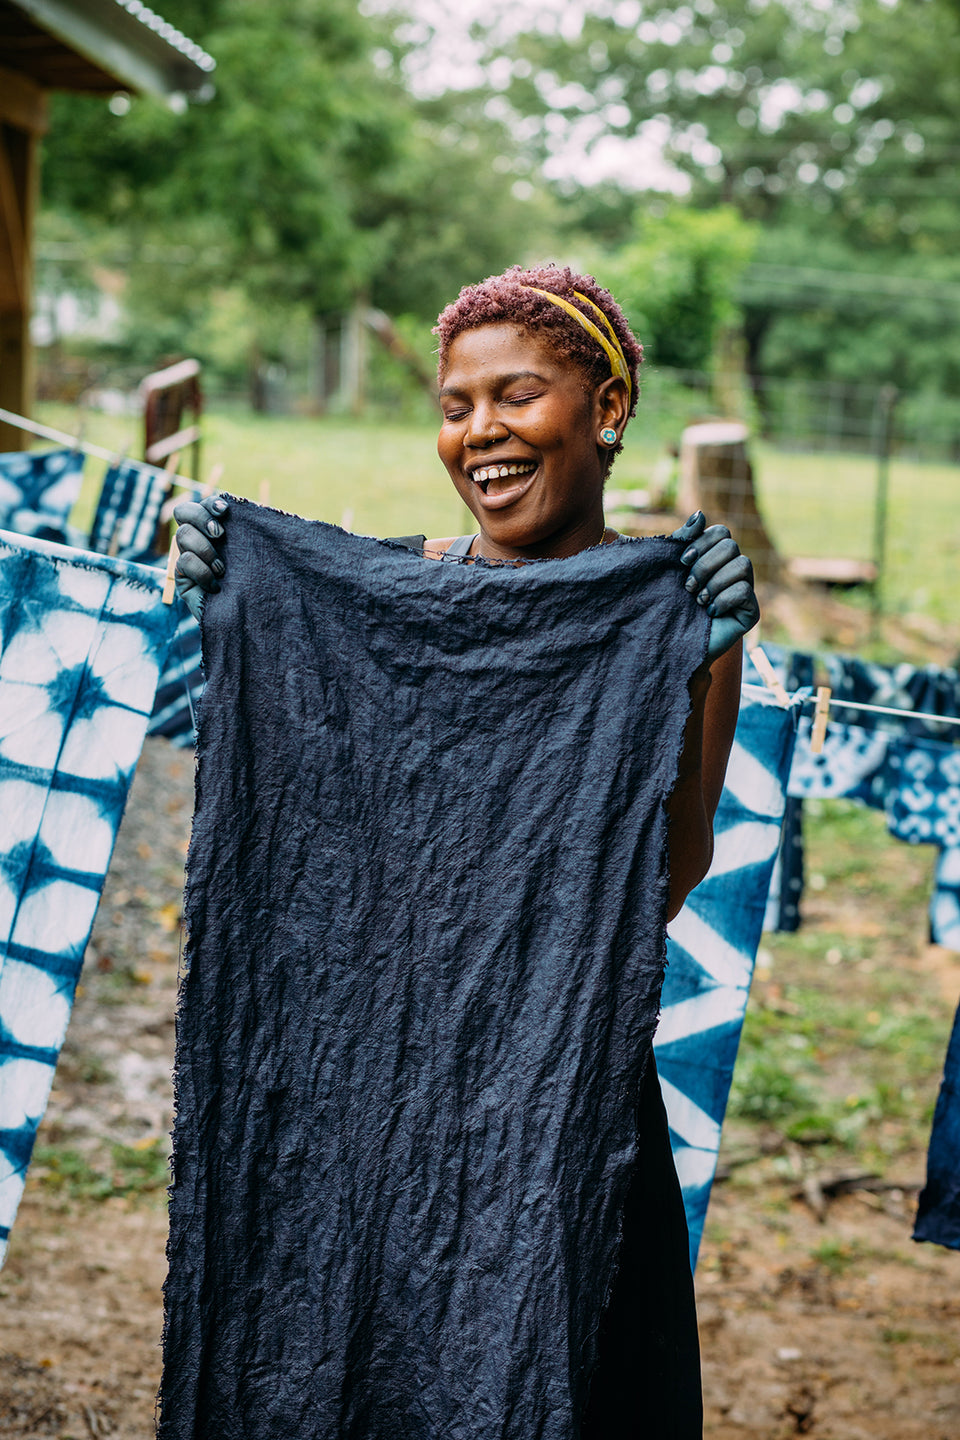 Exploring Indigo Dyeing and Shibori